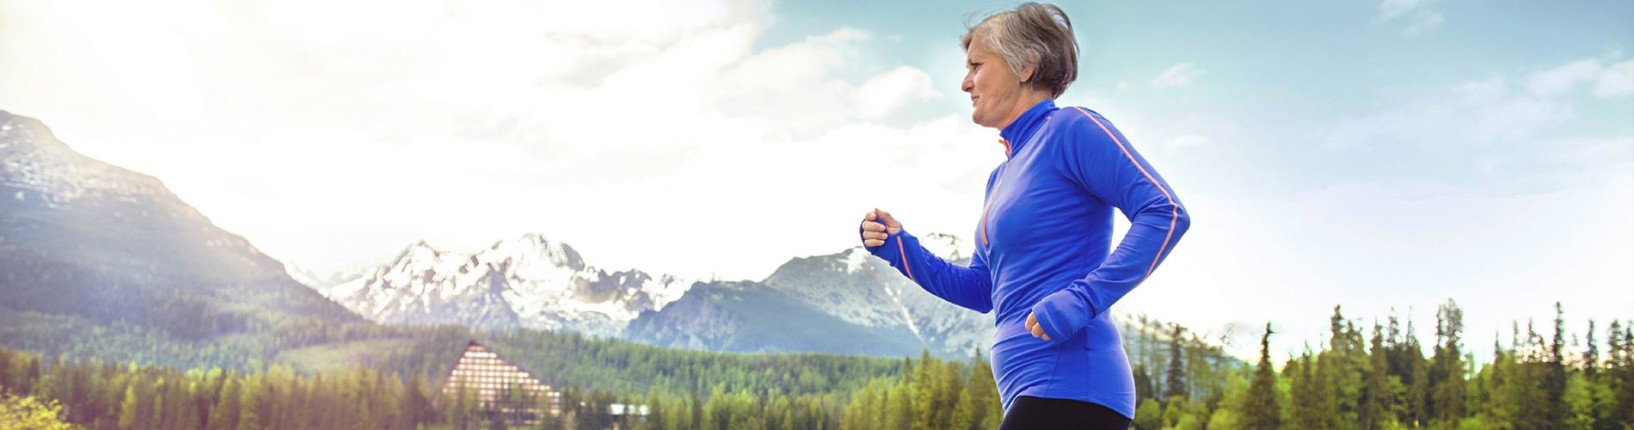 Should Seniors Return to Running After Hip Replacement?